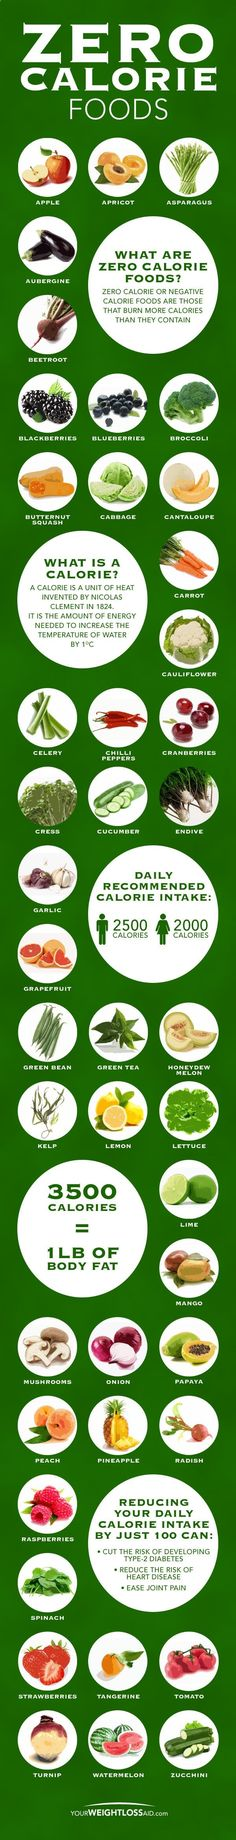 Zero Calorie Impact Foods. So glad Strawberries, Blueberries & Cantaloupe are on the list!